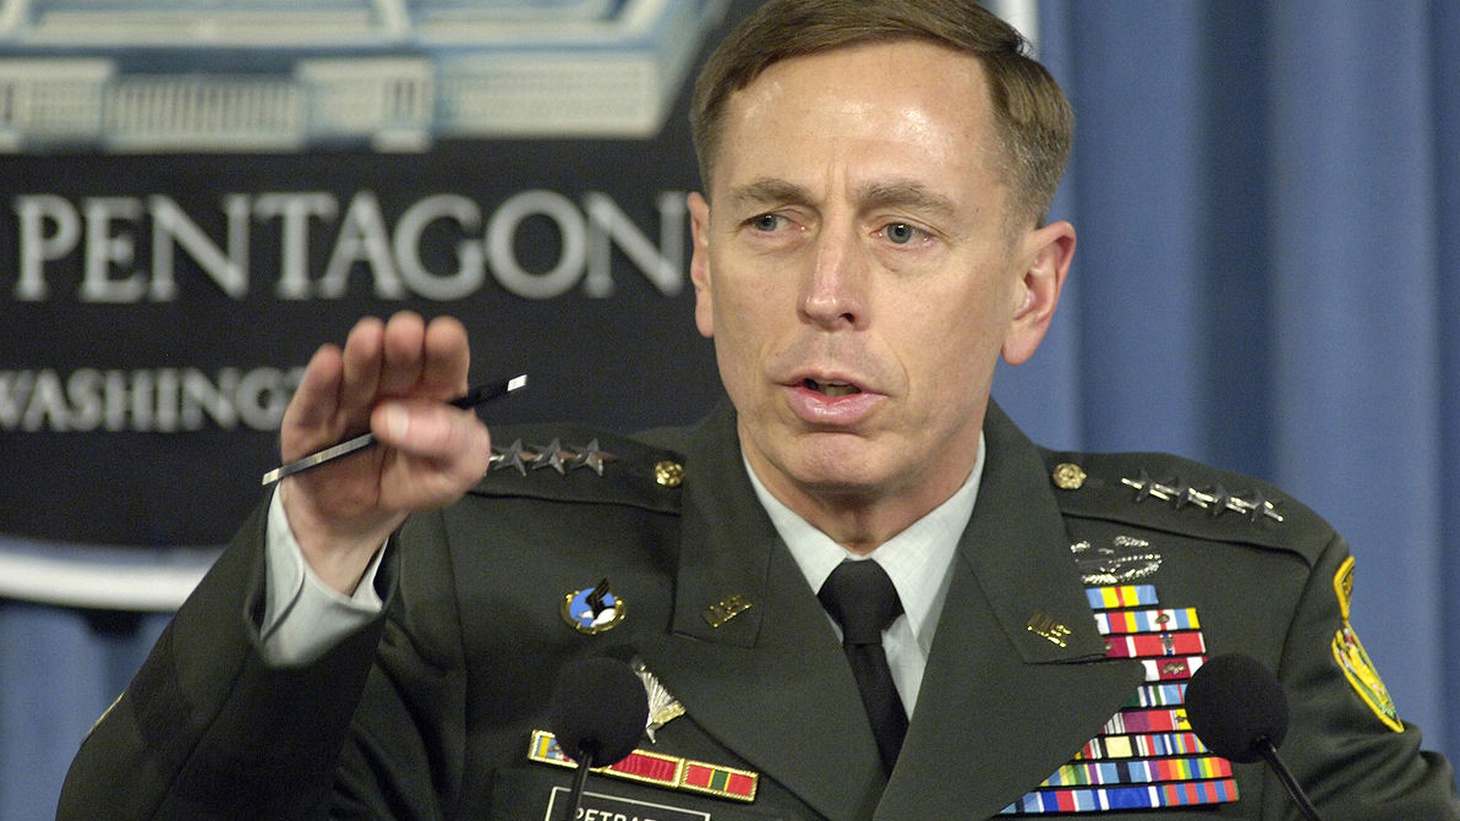 American drones kill hostages, Governor David Petraeus gets off easy, the Clintons under fire.